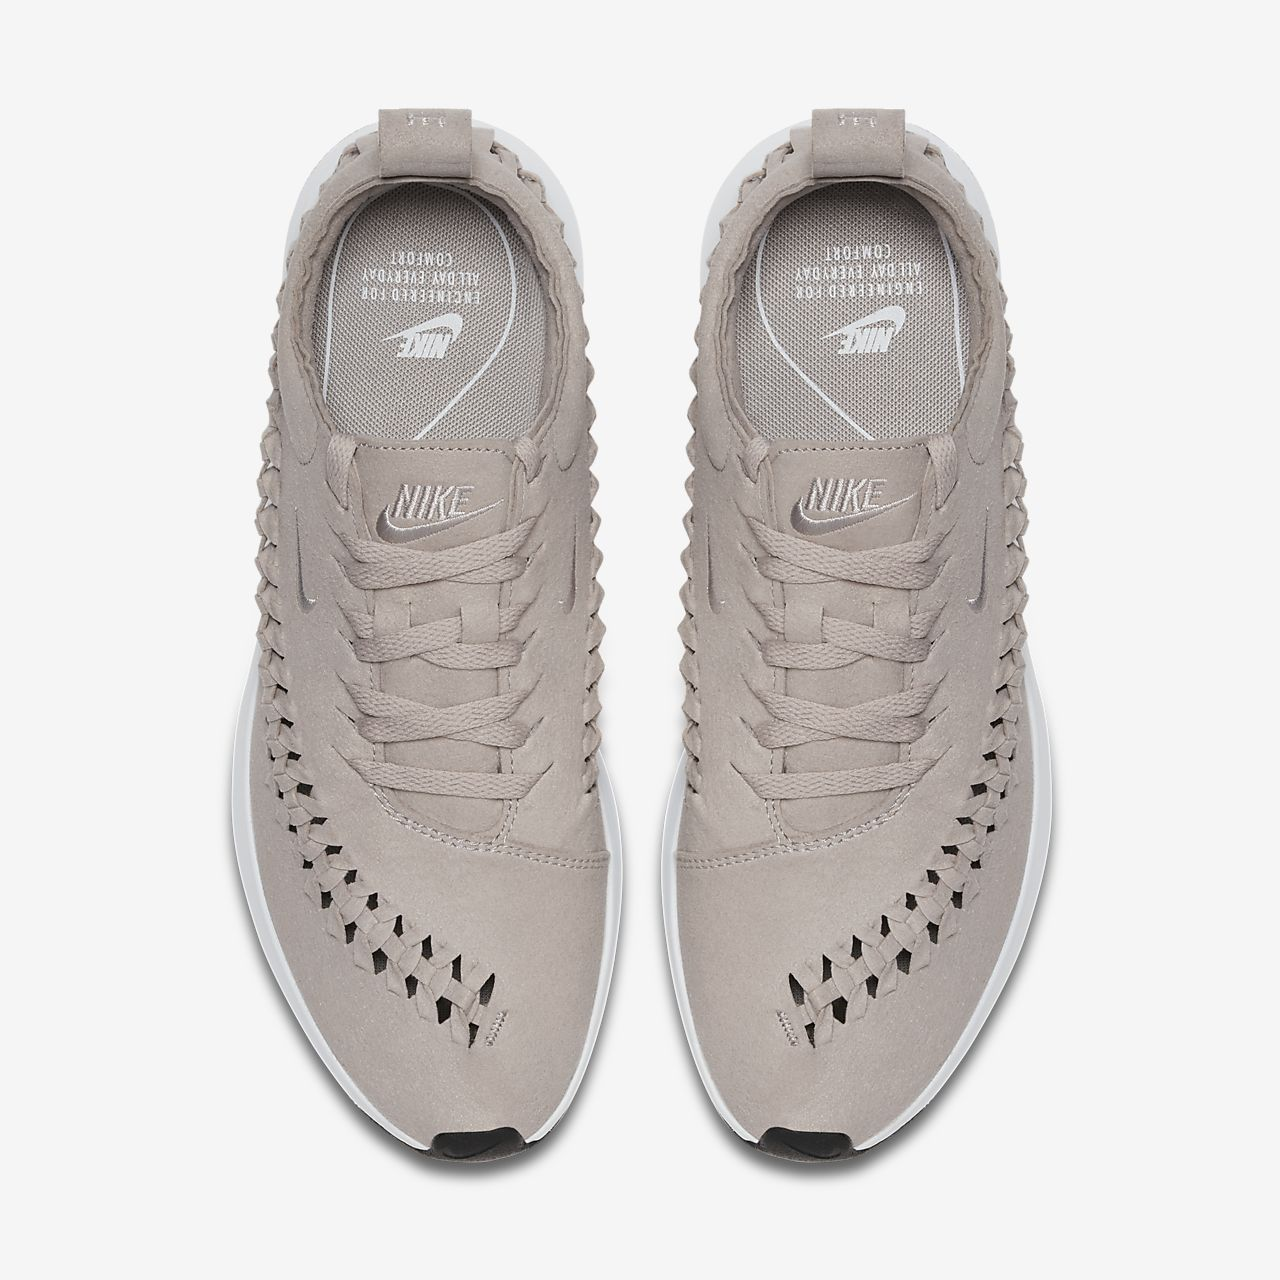 c88a86a7de Nike Dualtone Racer Woven Women's Shoe | want | Shoes, Nike, Sneakers